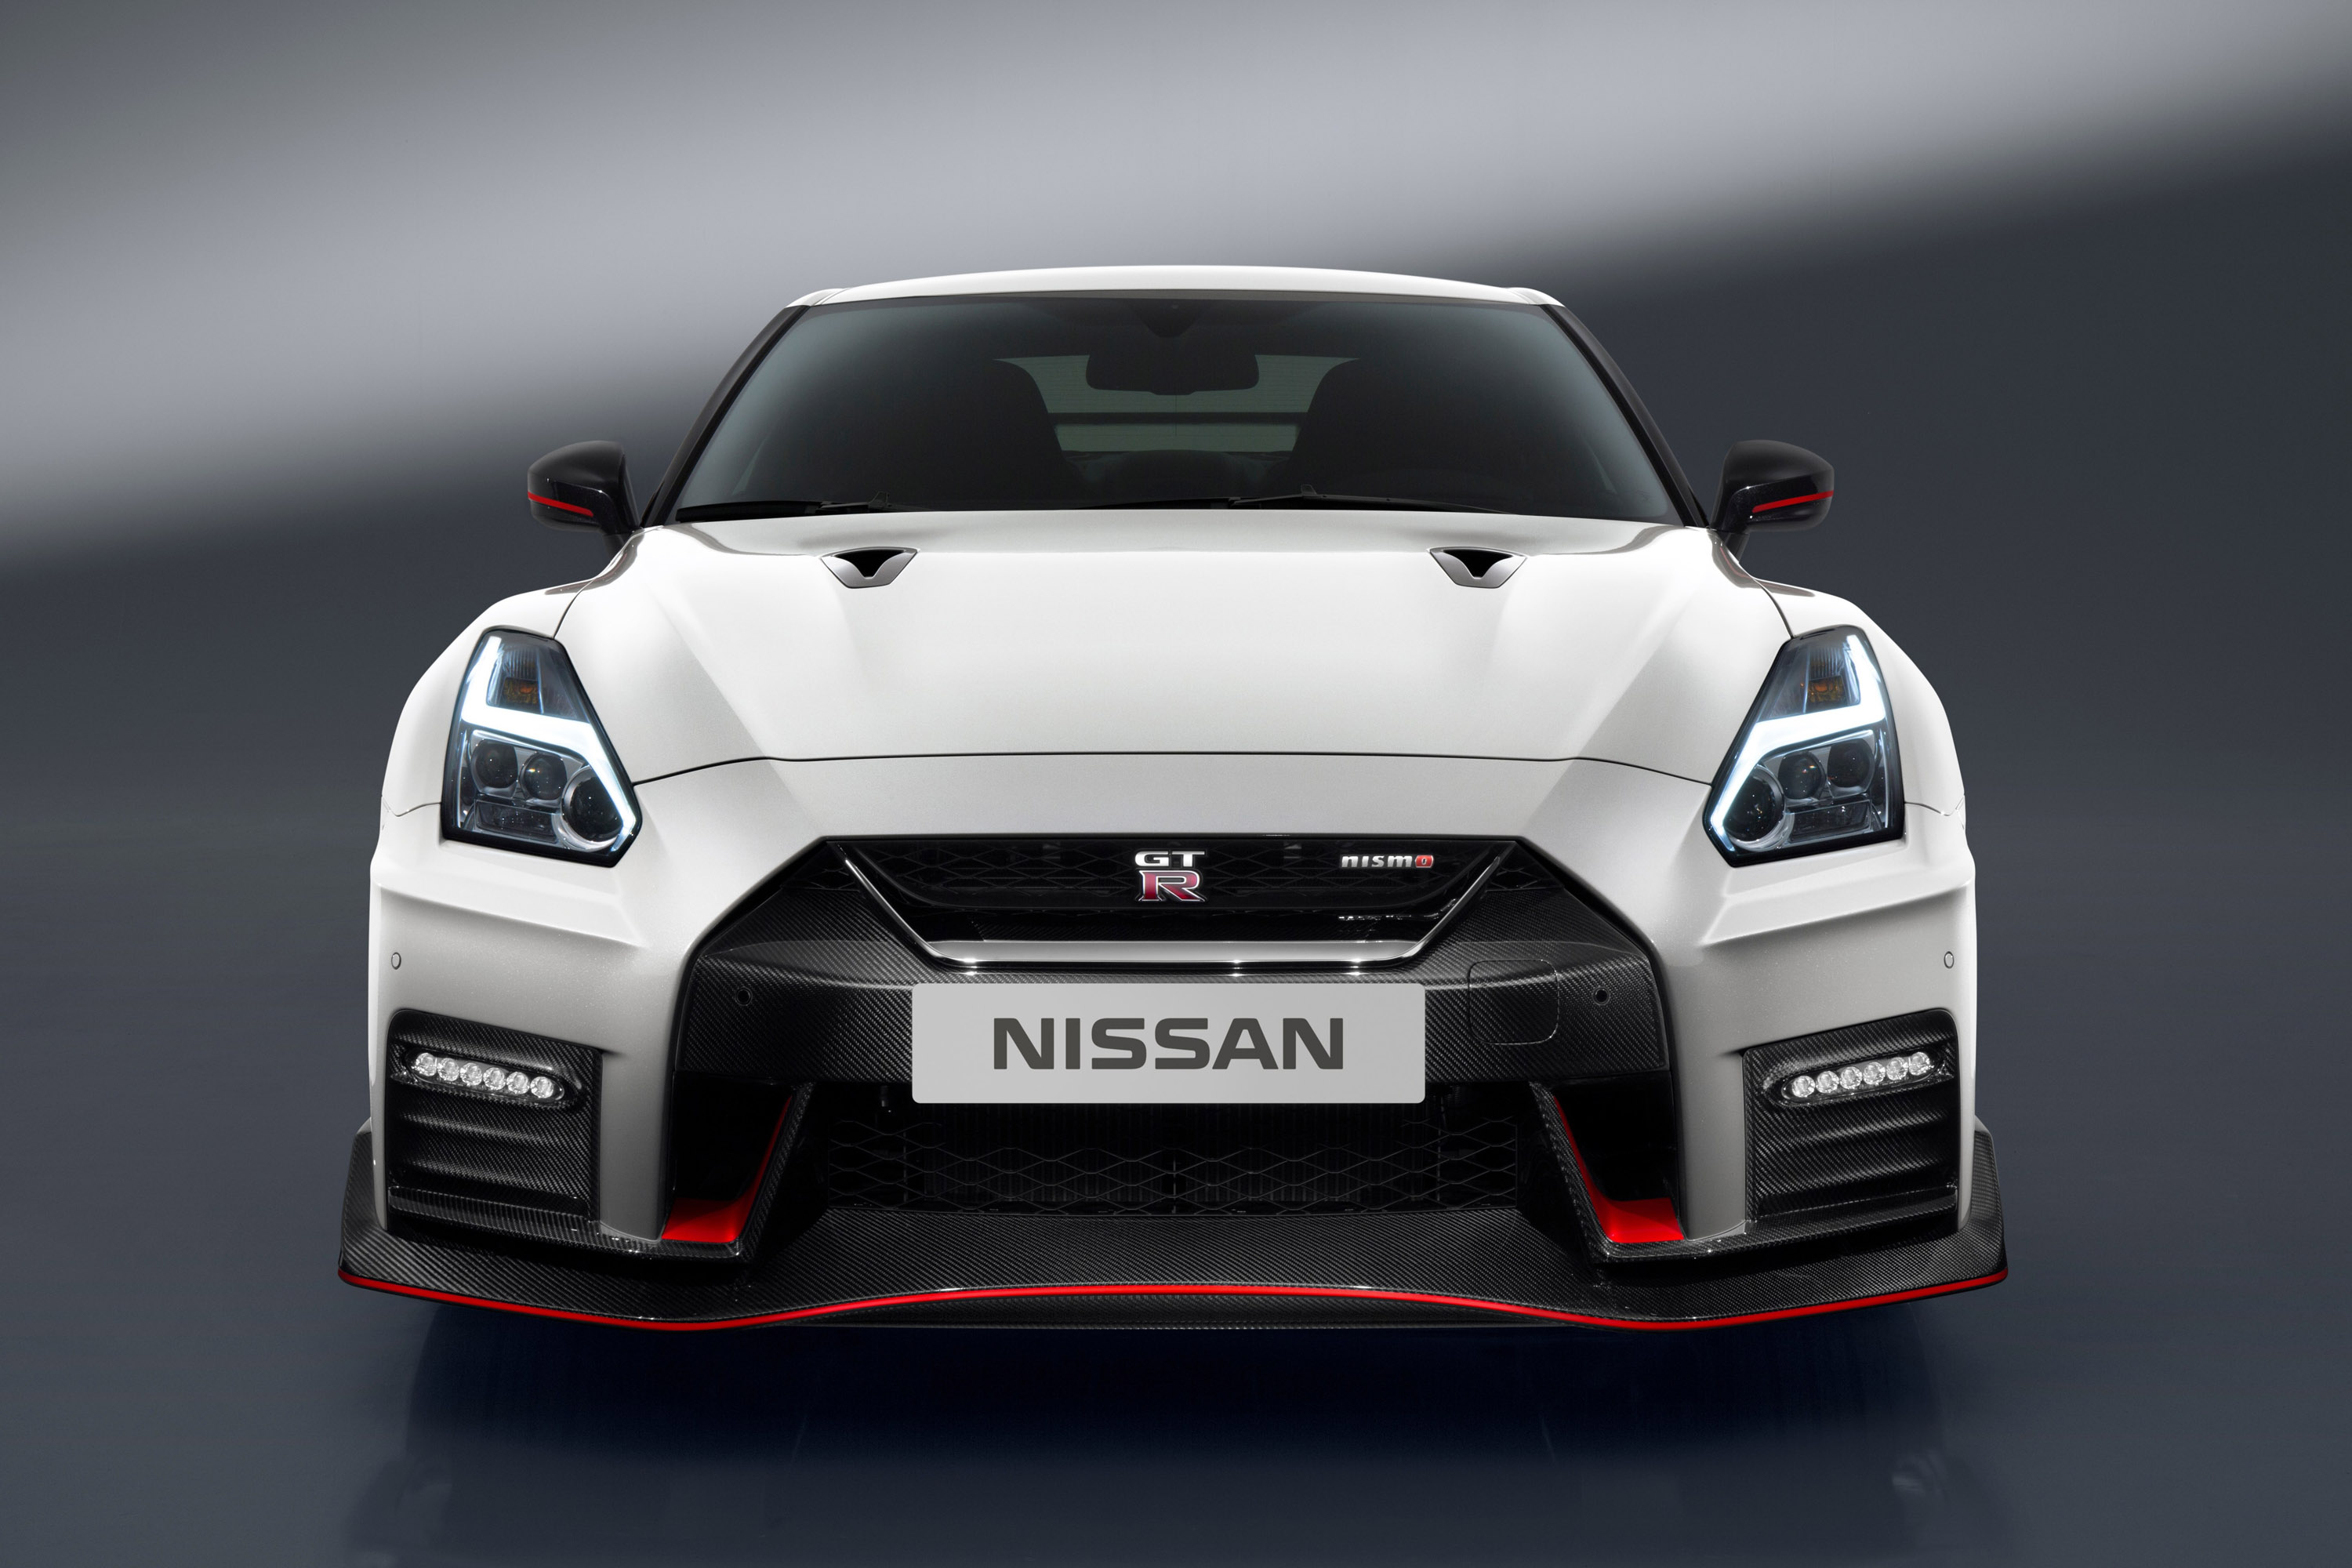 2017 Nissan Gt R Nismo Made Its Global Debut